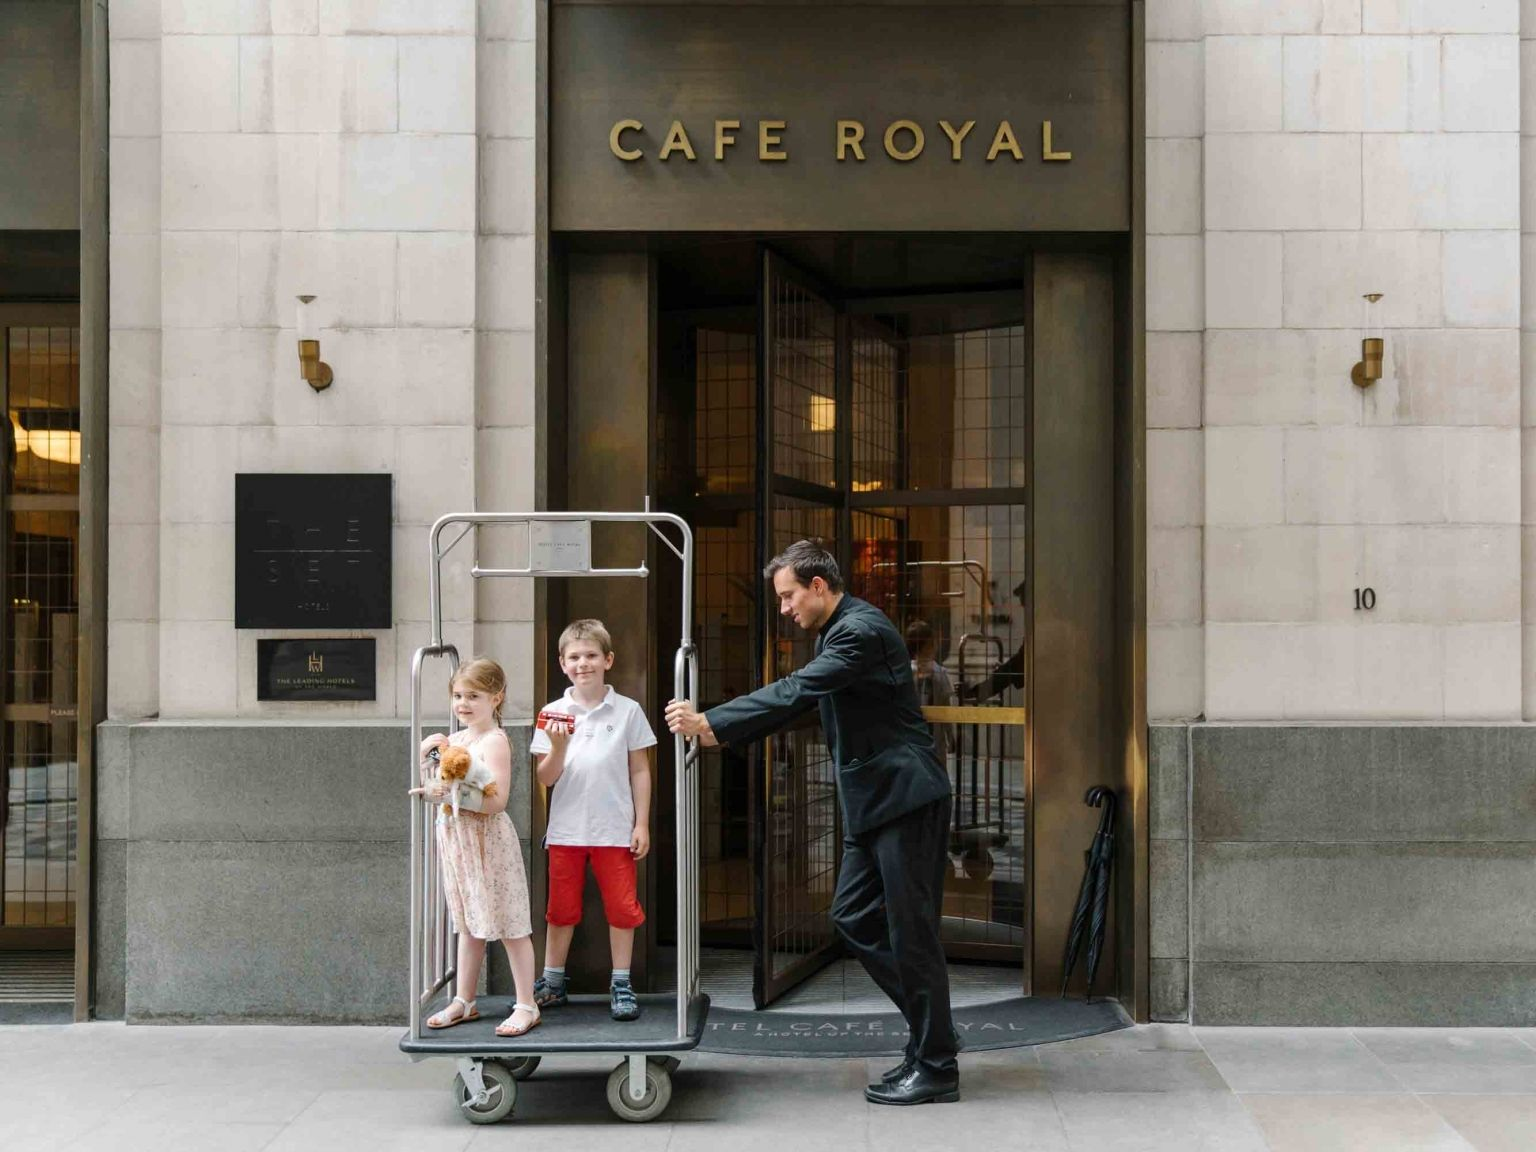 family hotel cafe royal london